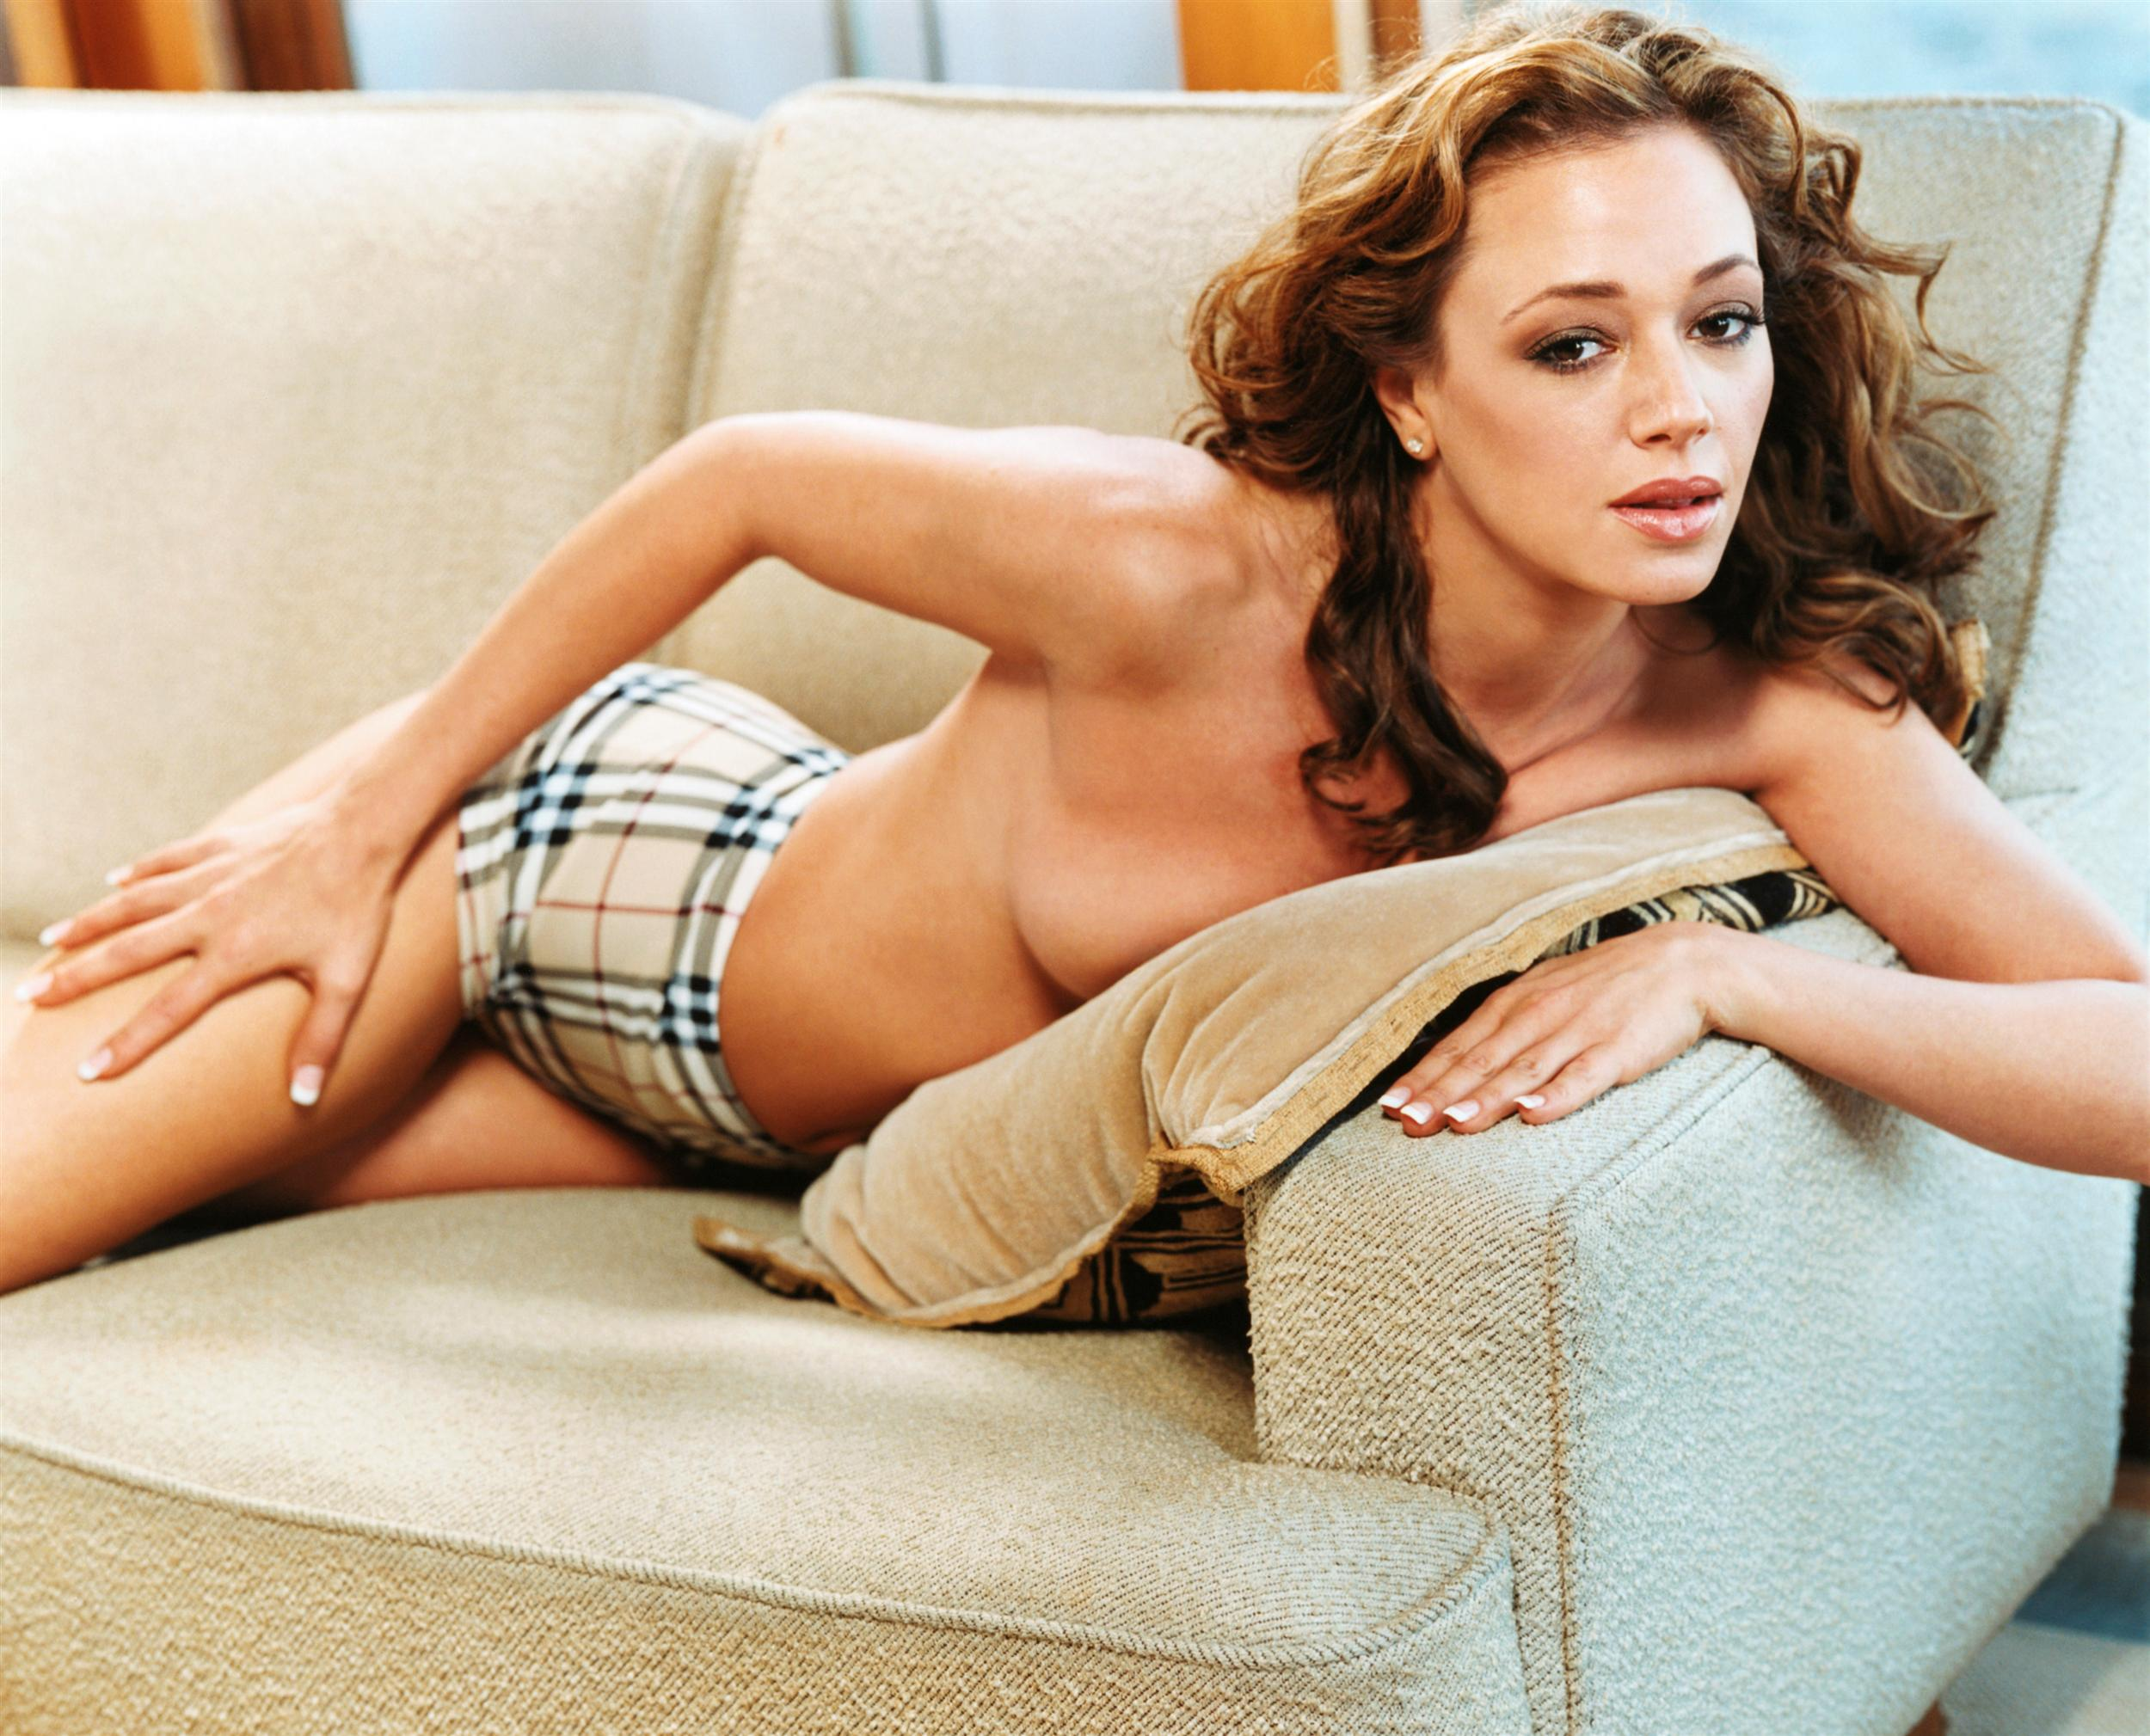 Leah remini sexiest